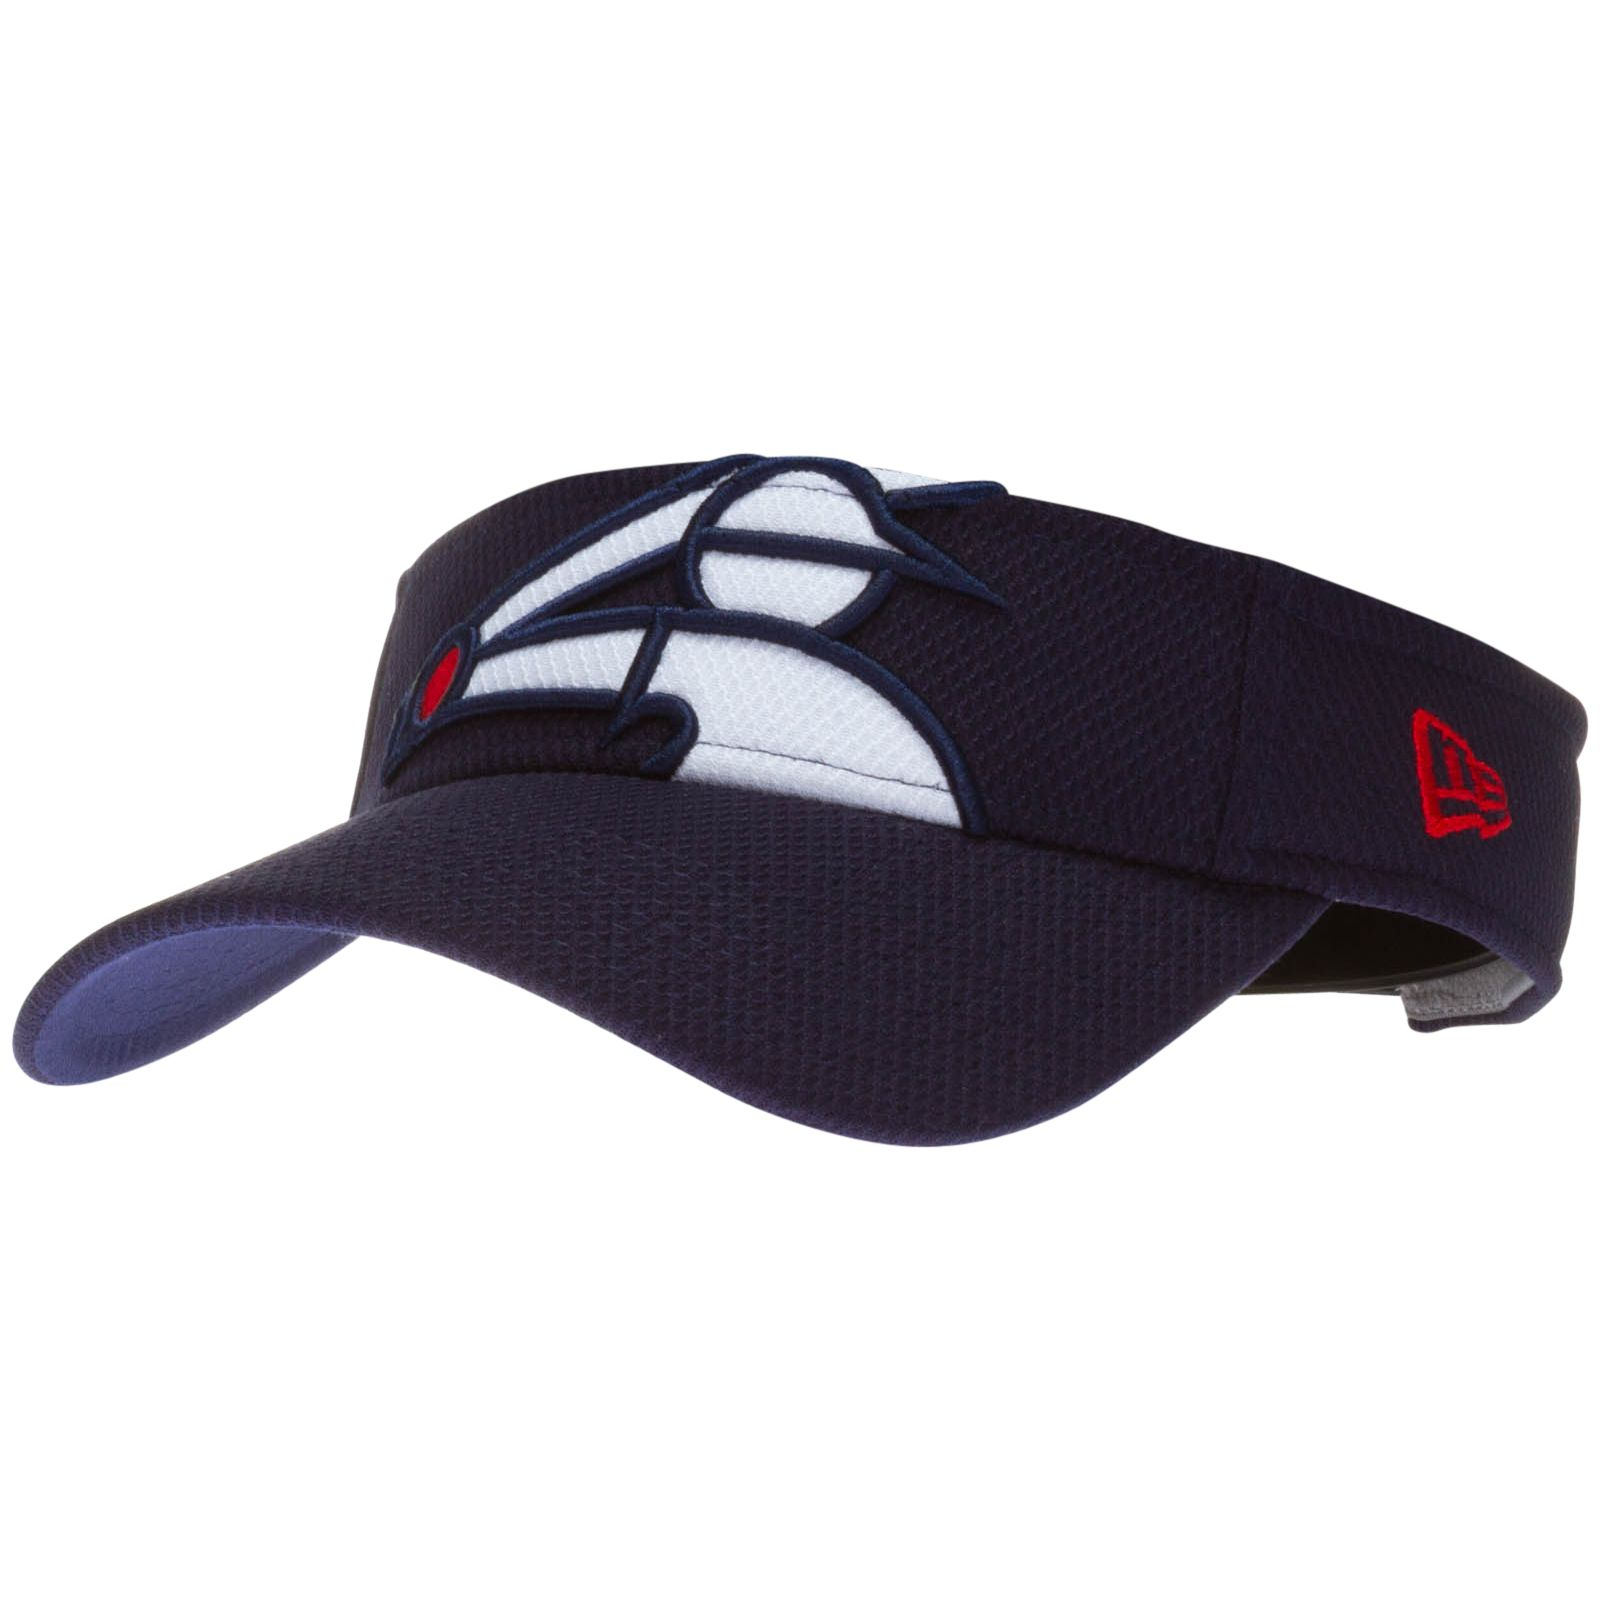 0b11275f0 Chicago White Sox Navy Half Batterman Visor by New Era #Chicago ...